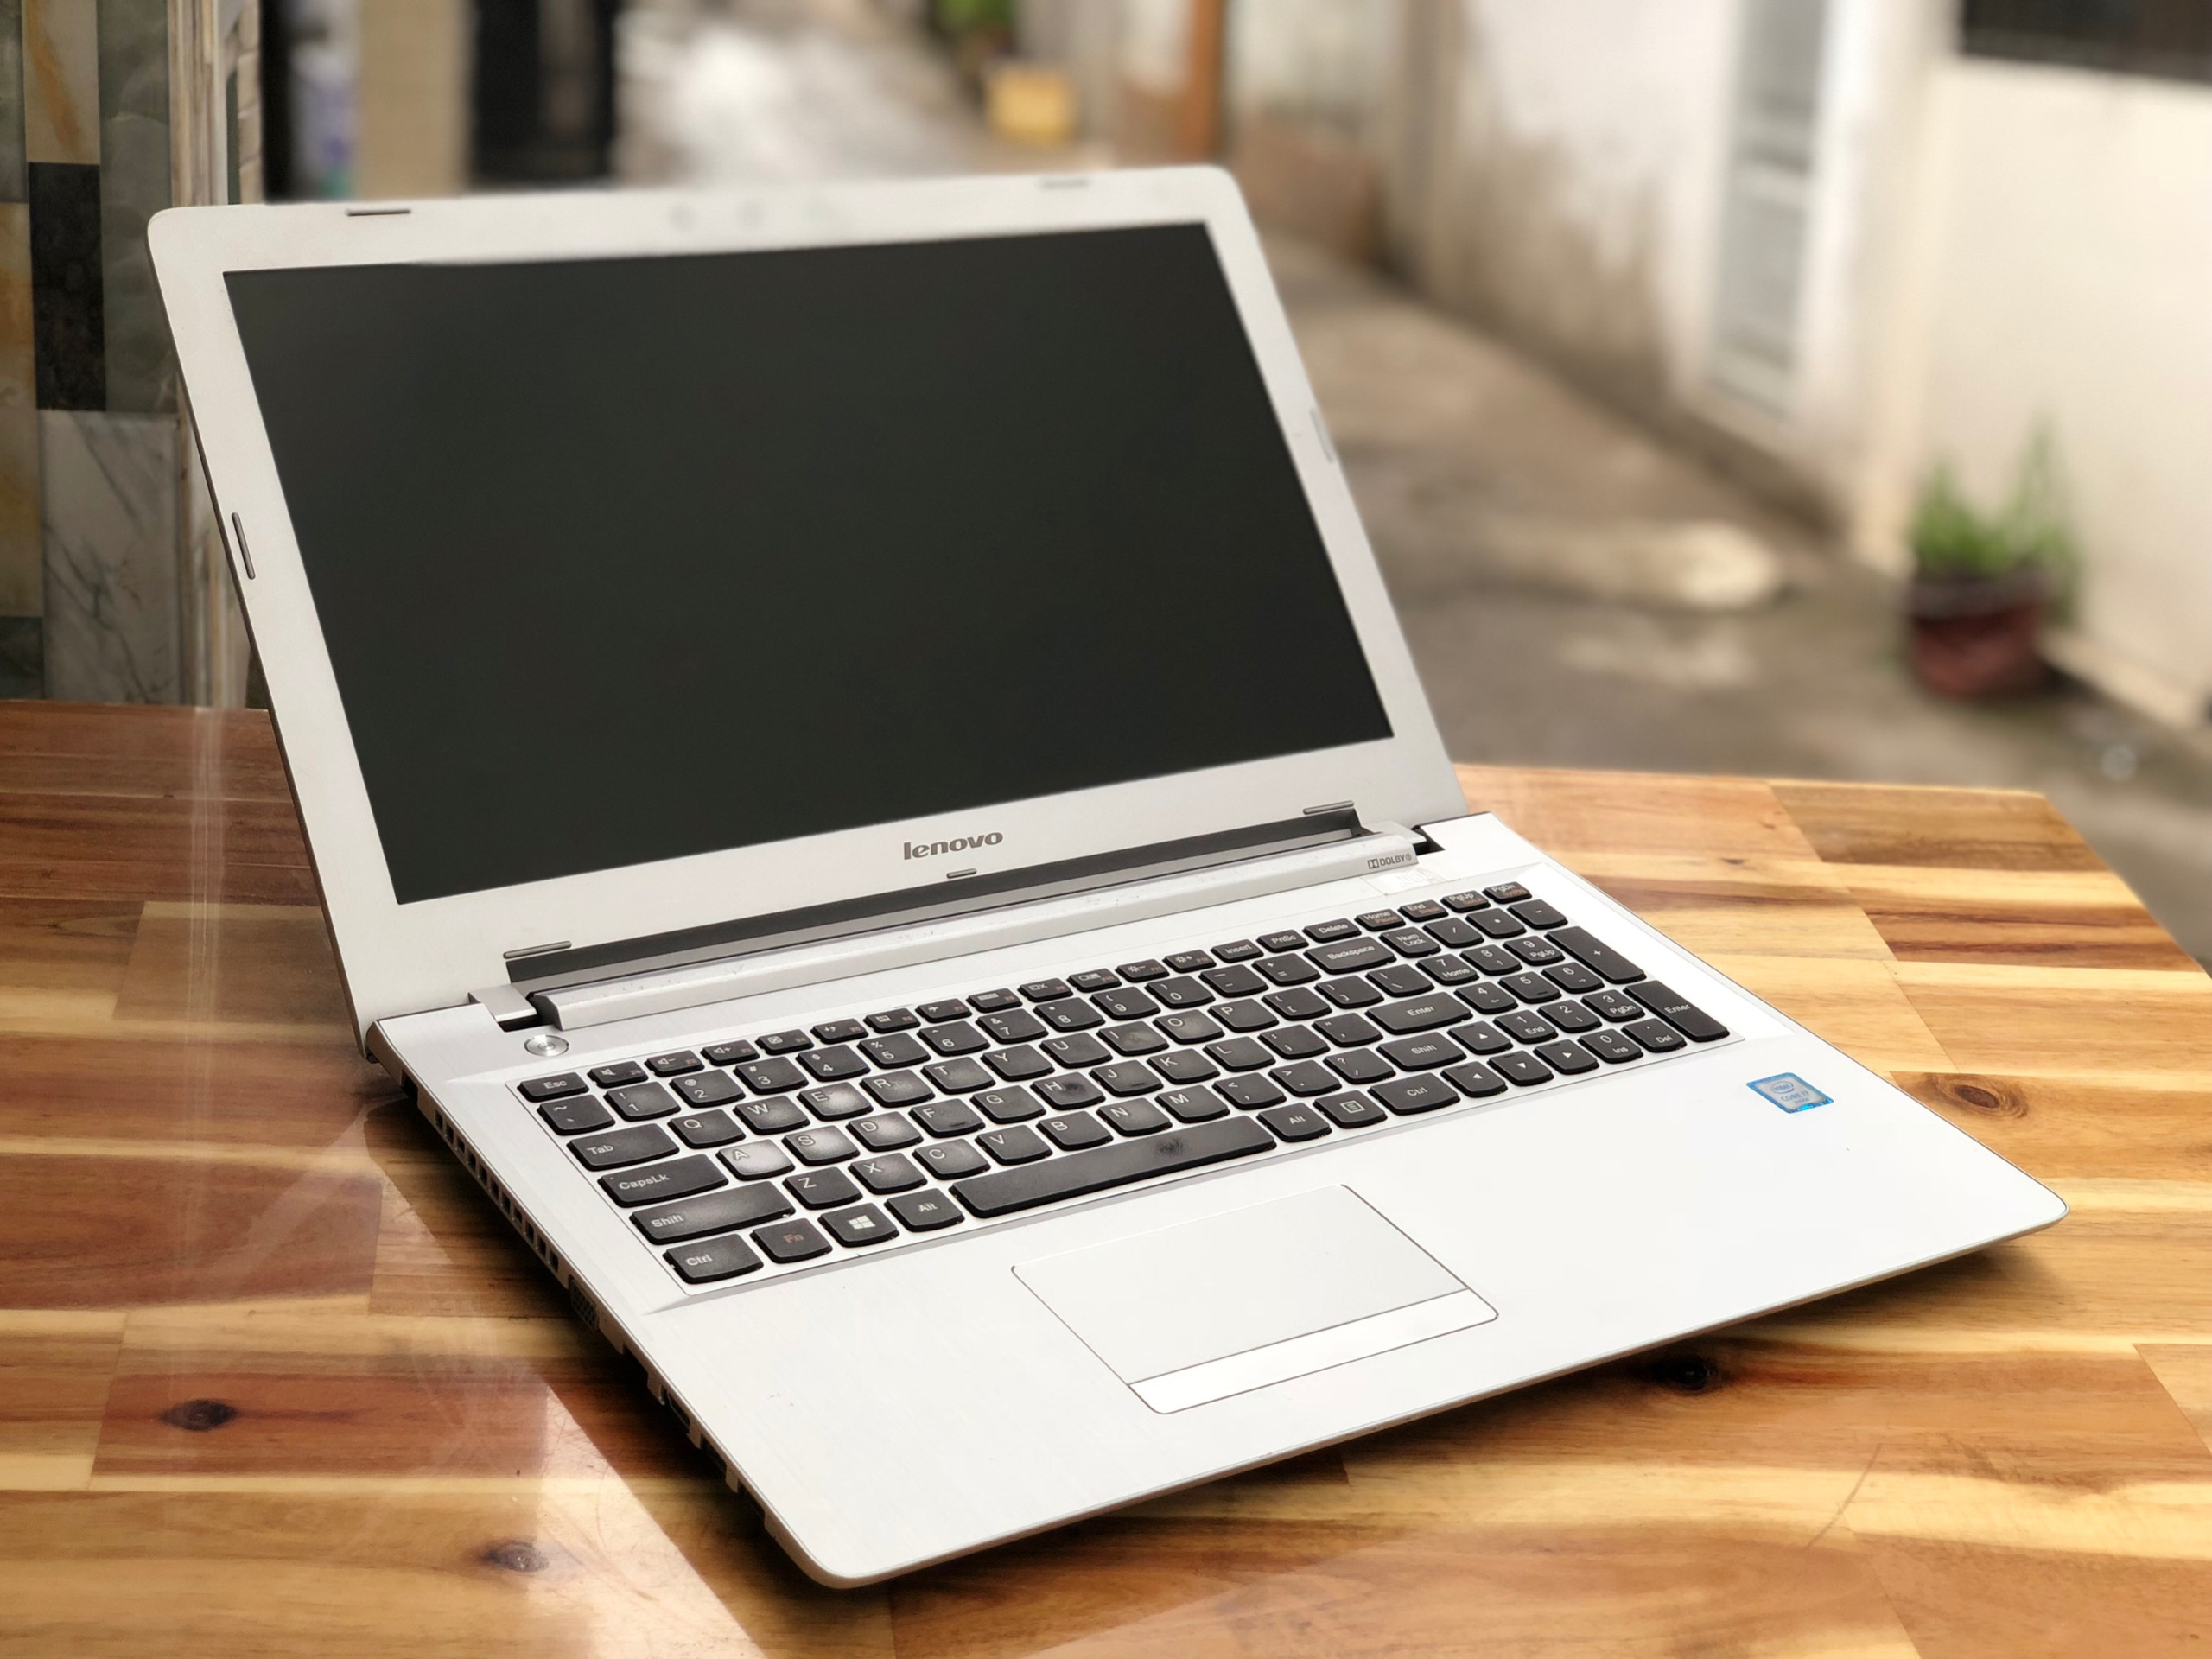 Laptop Lenovo ideapad 500-15ISK, I7 6500U 8G 1T Vga 4G Full HD Like new zin 100% Giá rẻ